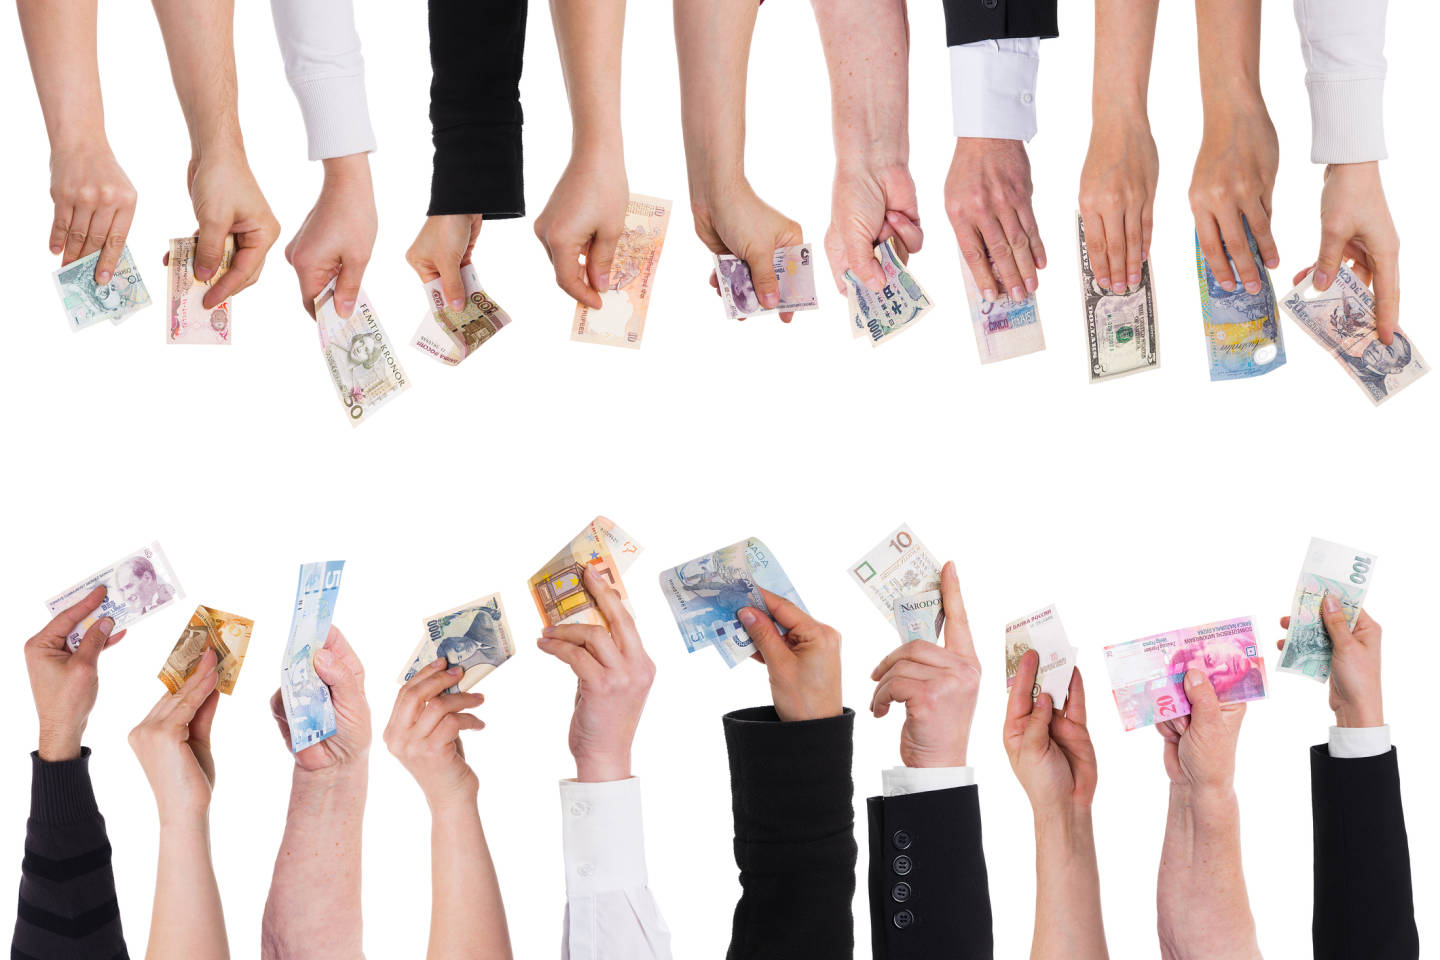 hands holding various forms of currency